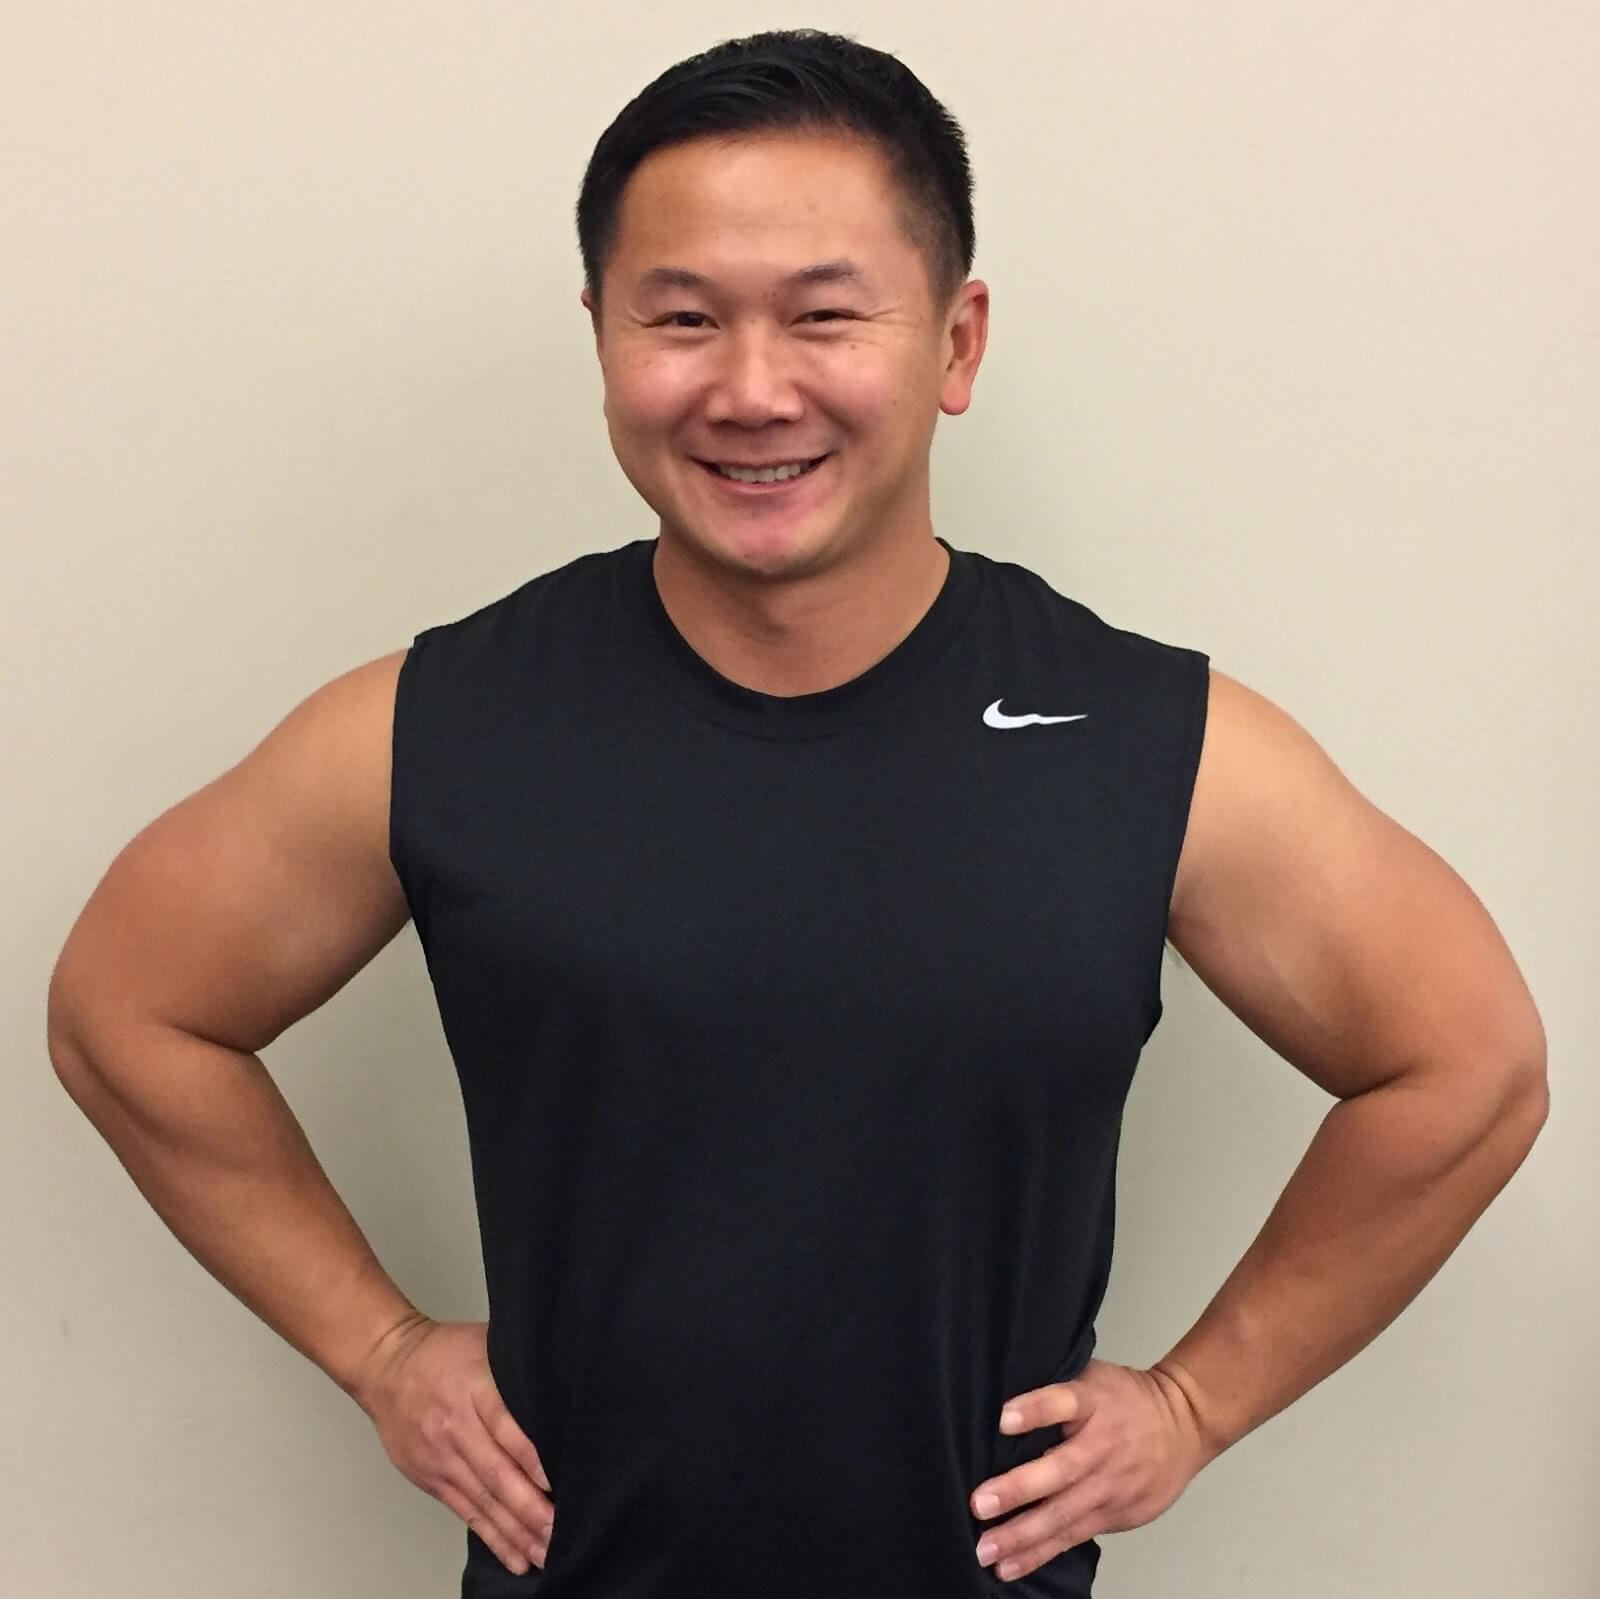 John is the lead fitness coach